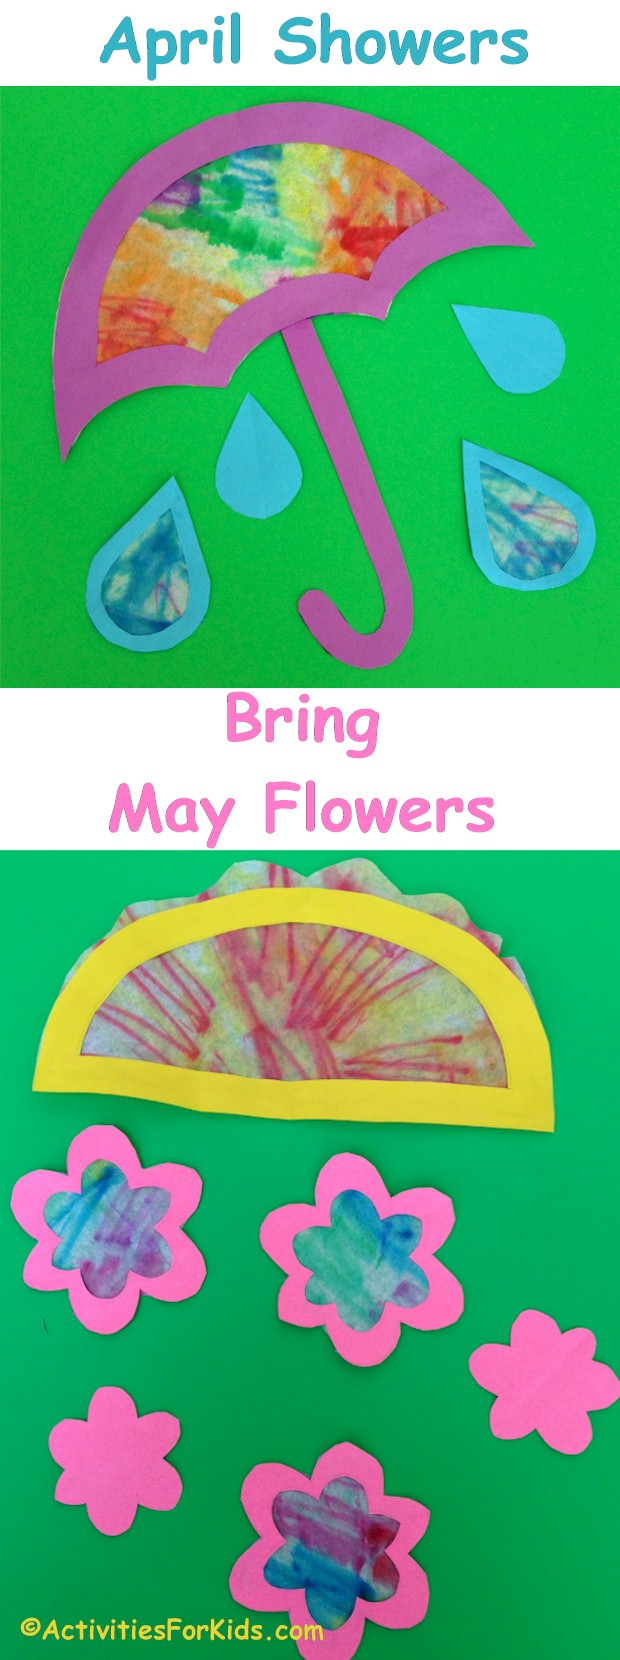 april showers bring may flowers craft for kids